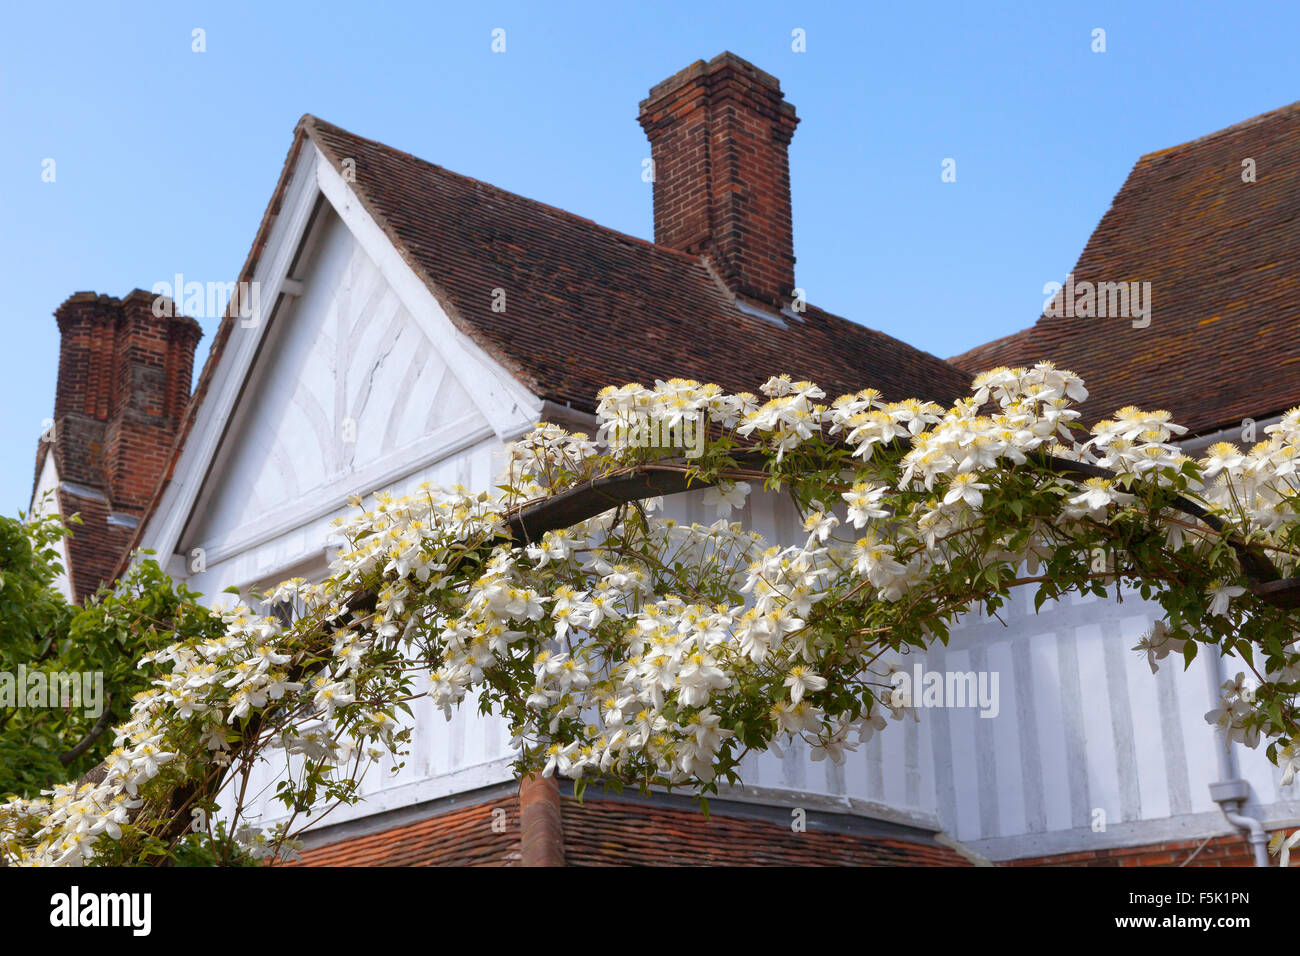 Floral arch in Lavenham, Suffolk - Stock Image